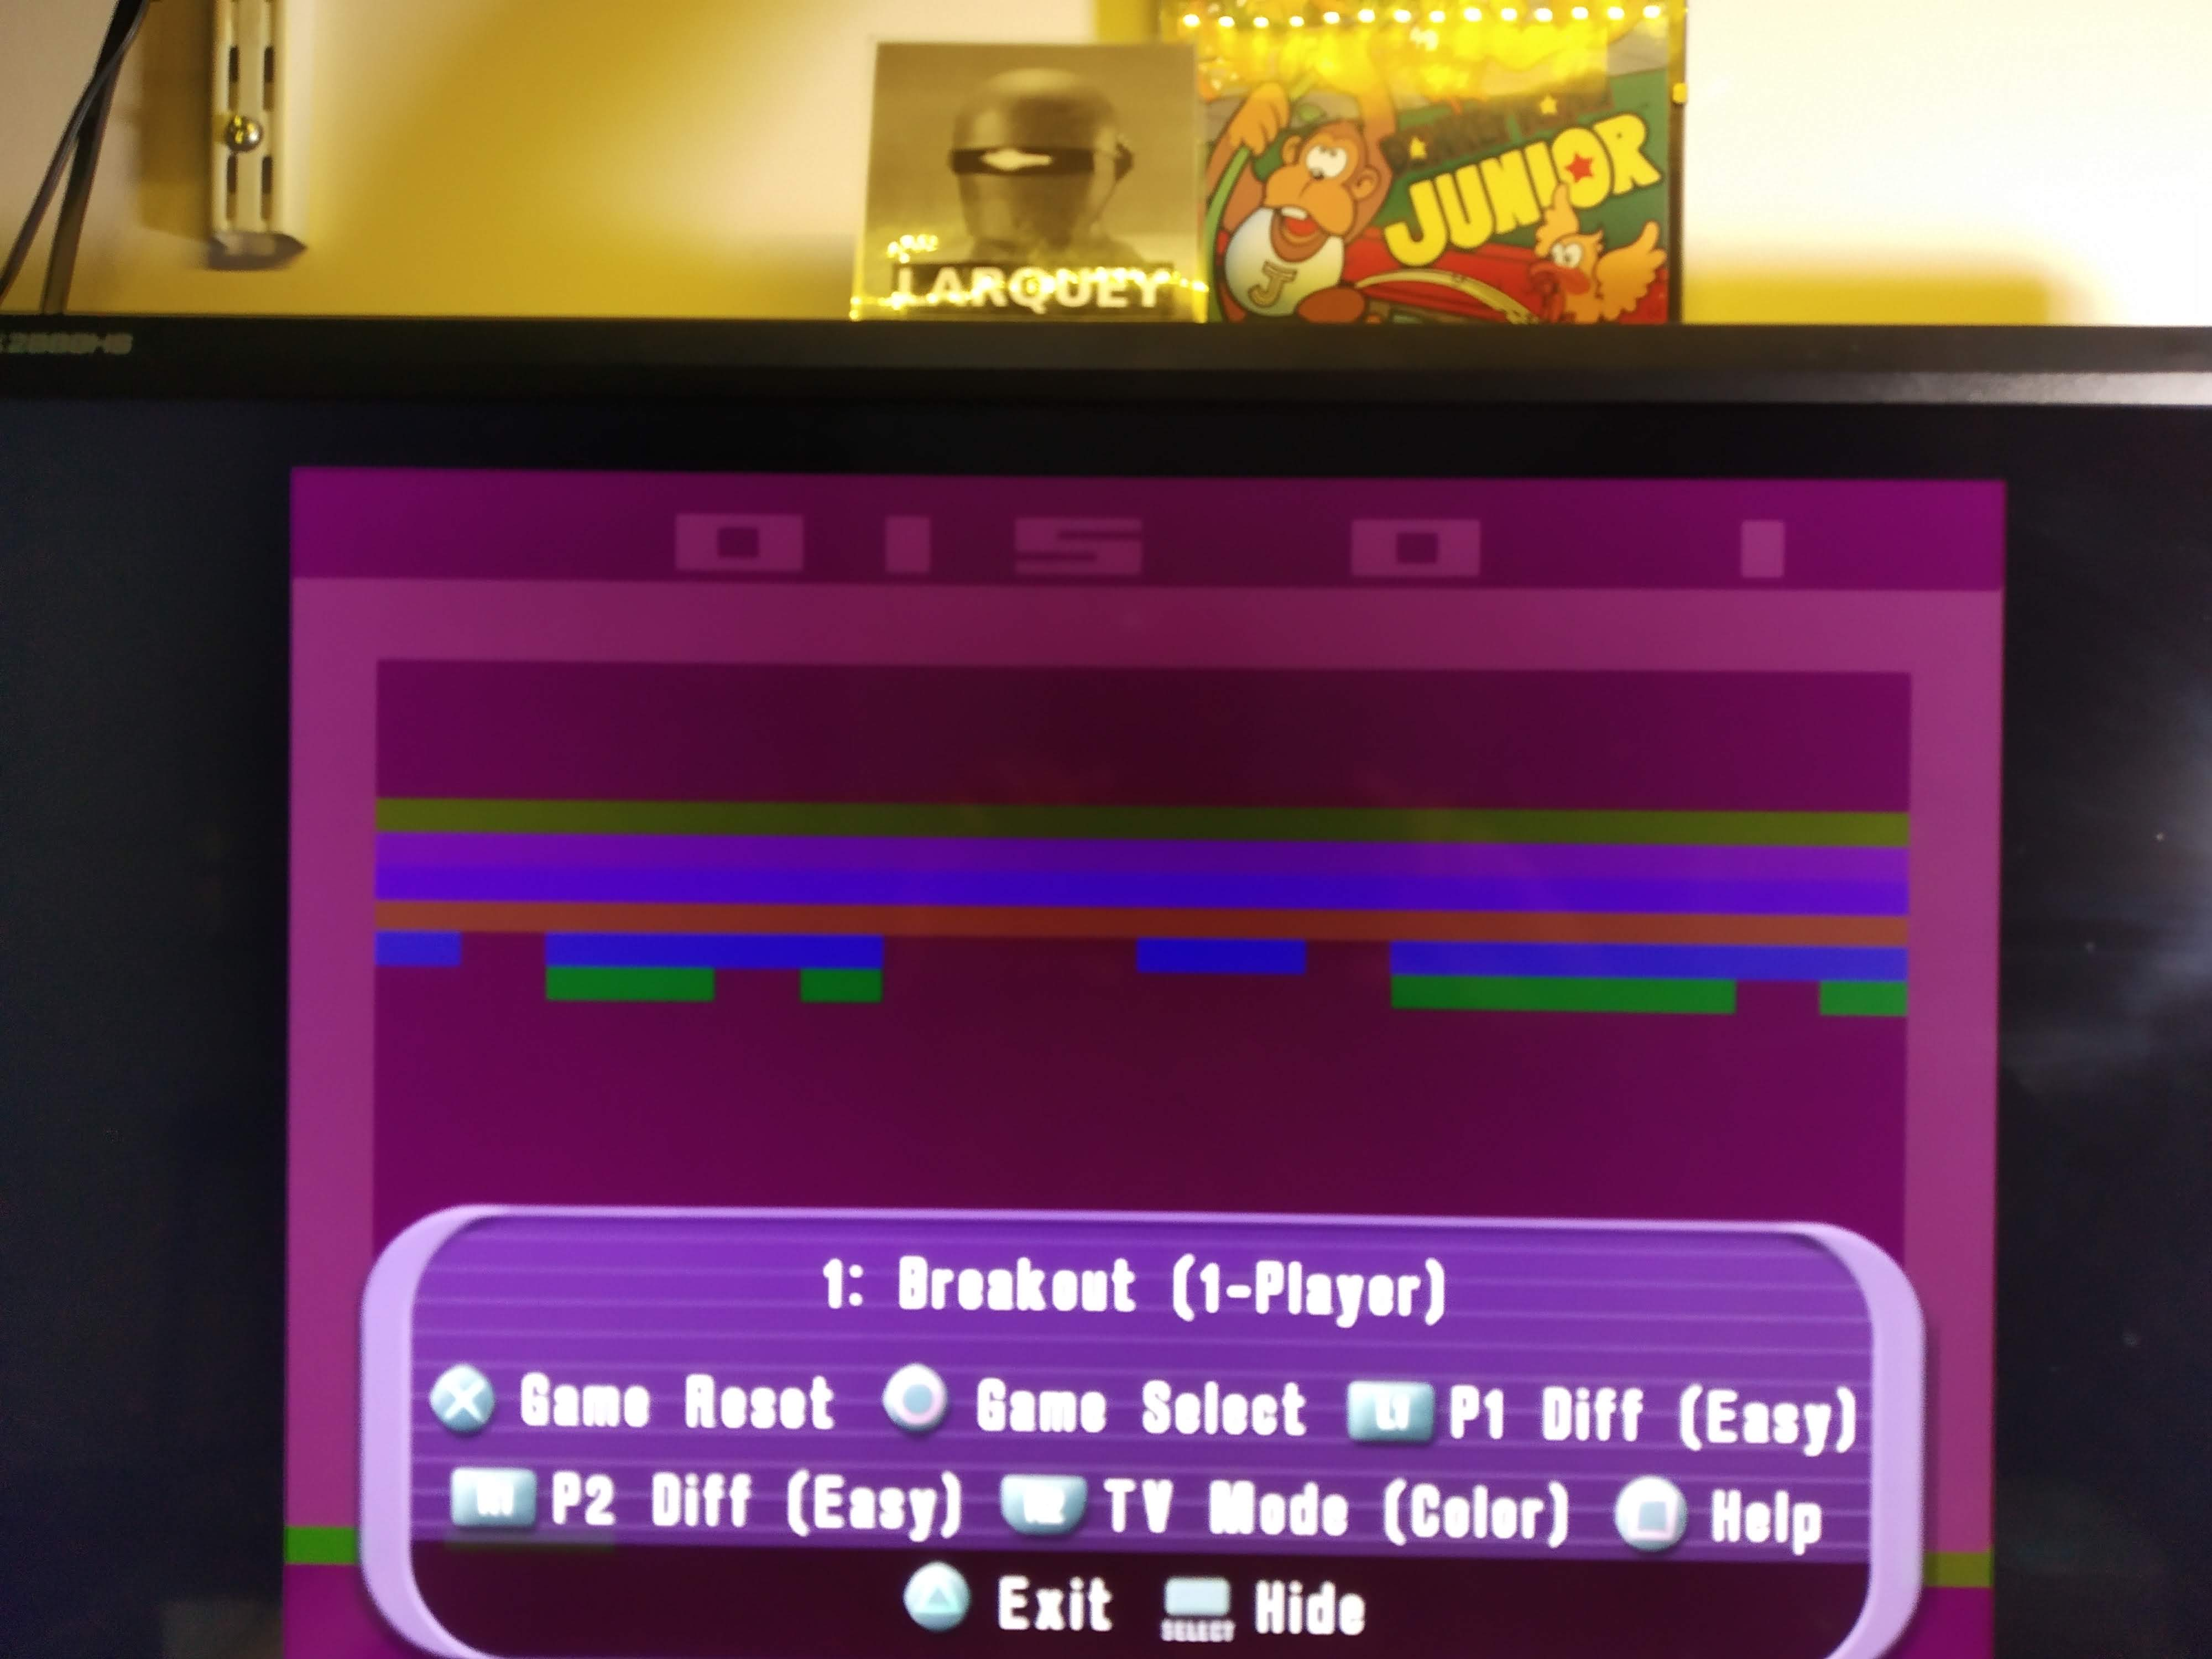 Larquey: Atari Anthology: Super Breakout - Home Version [Game 1B] (Playstation 2 Emulated) 15 points on 2020-08-02 13:36:59